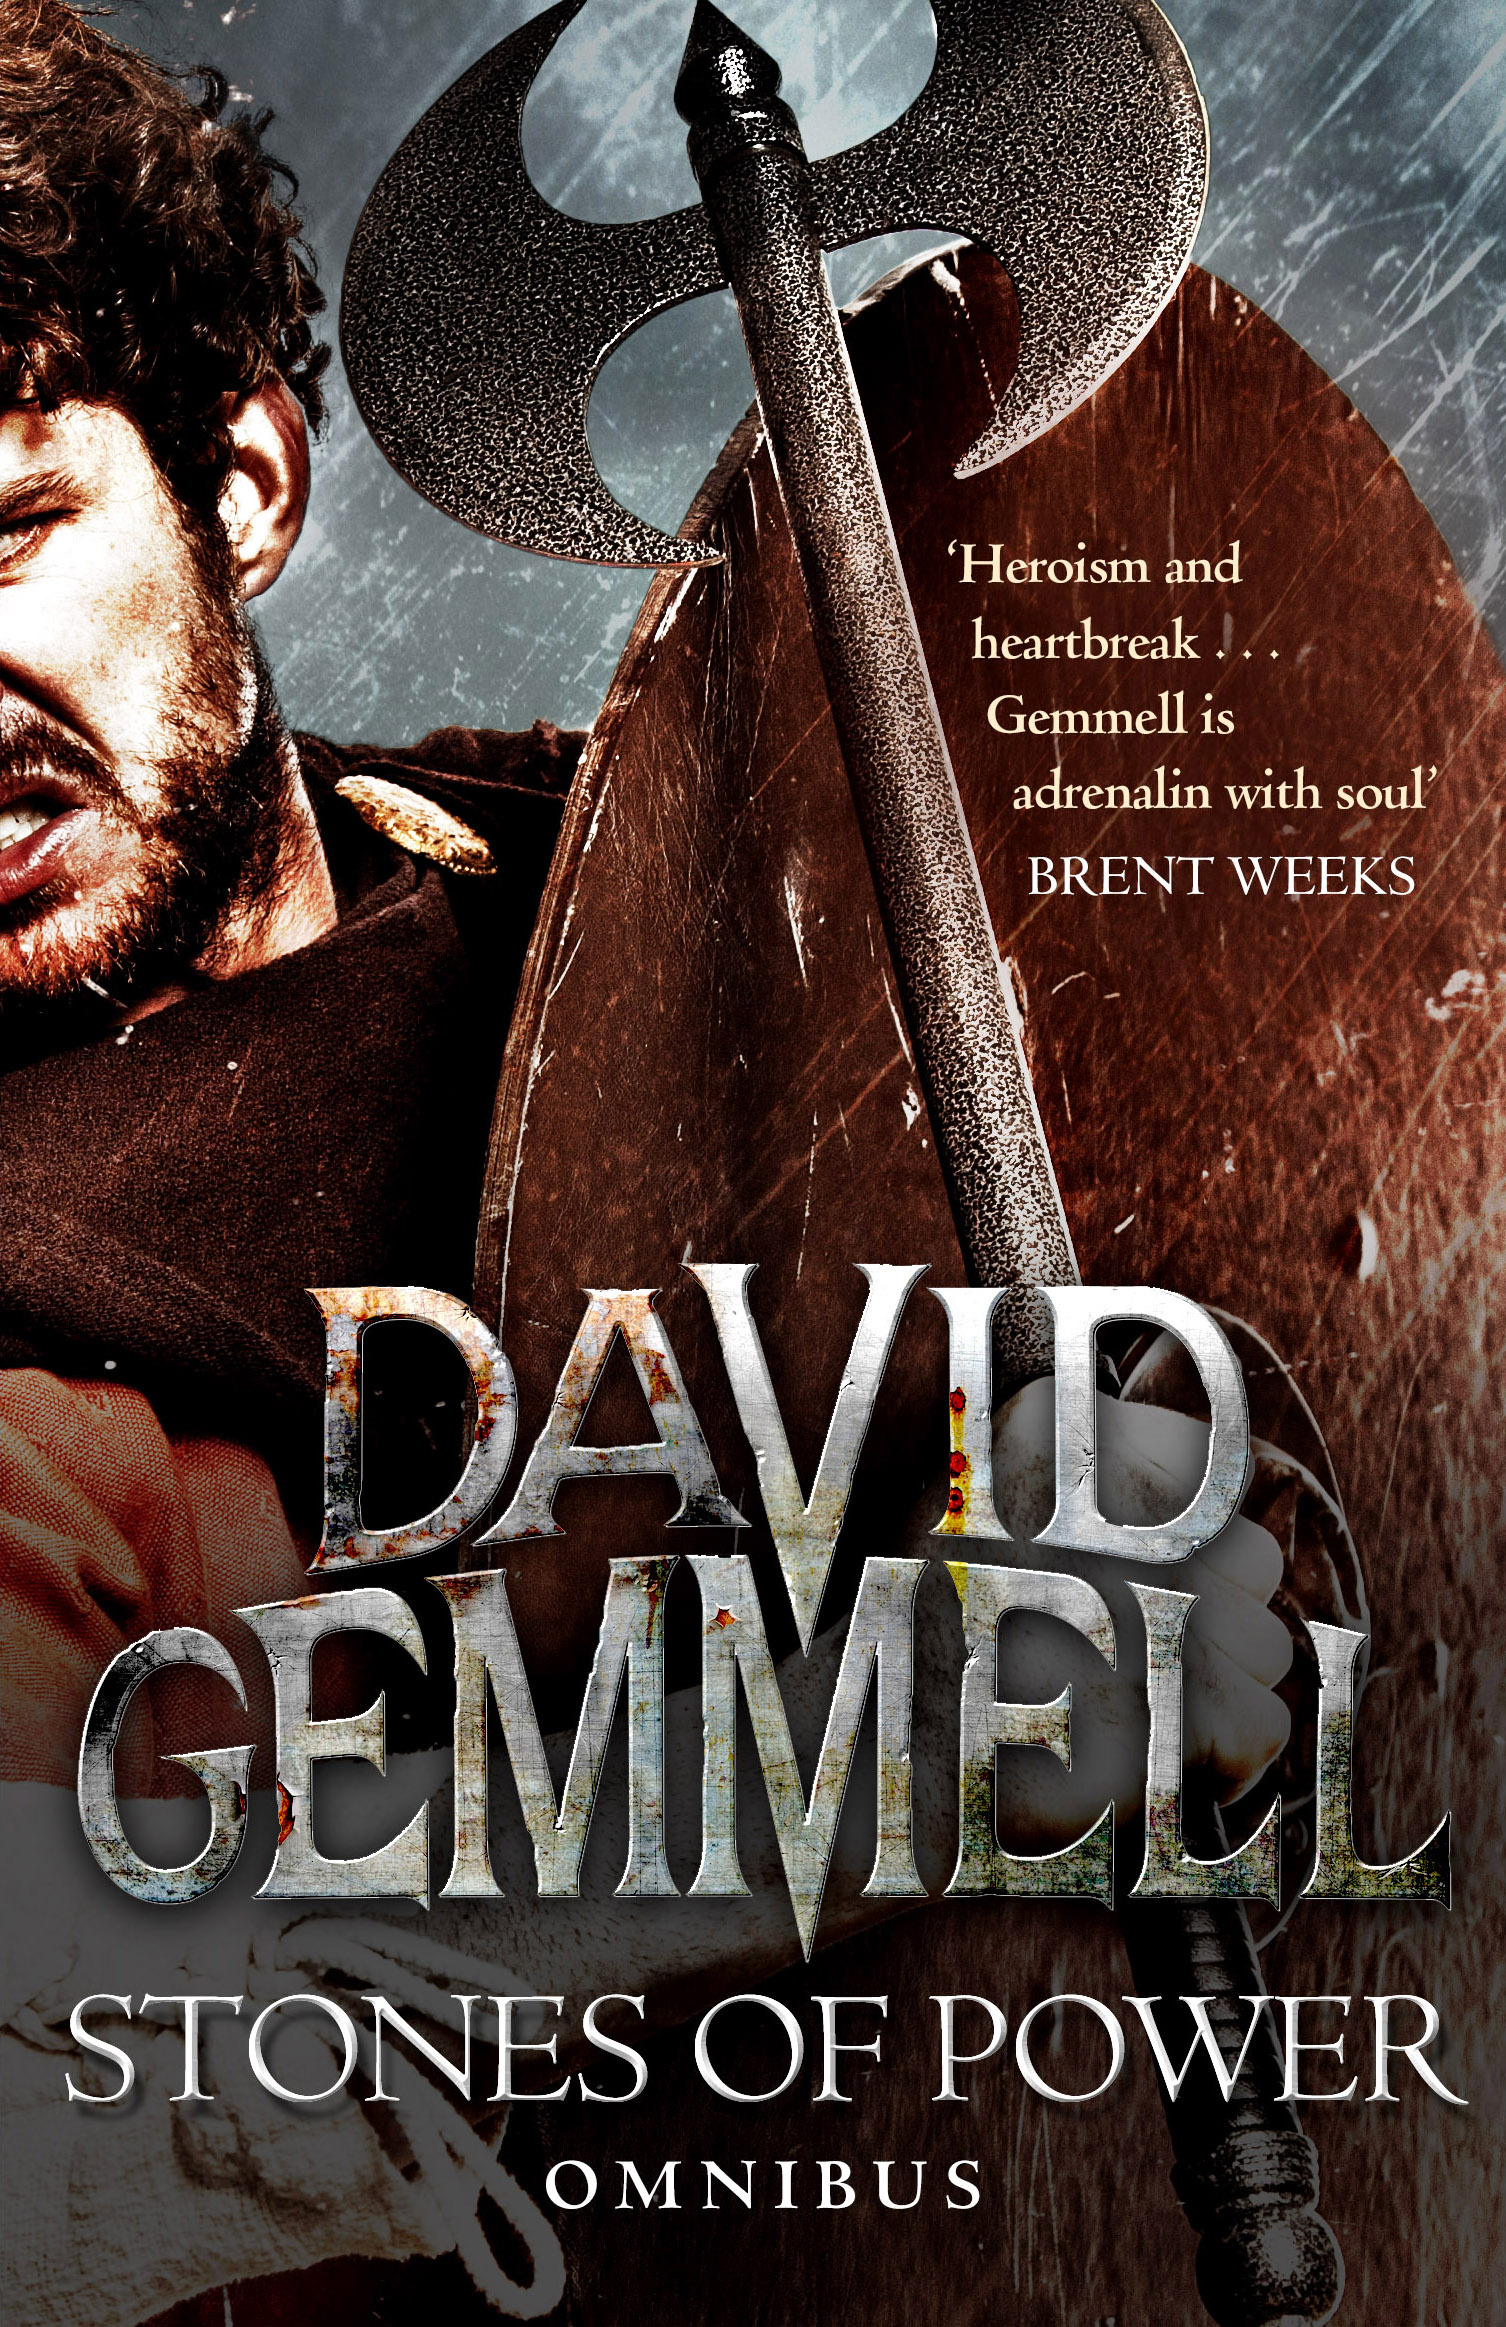 Stones Of Power The Omnibus Edition By David Gemmell